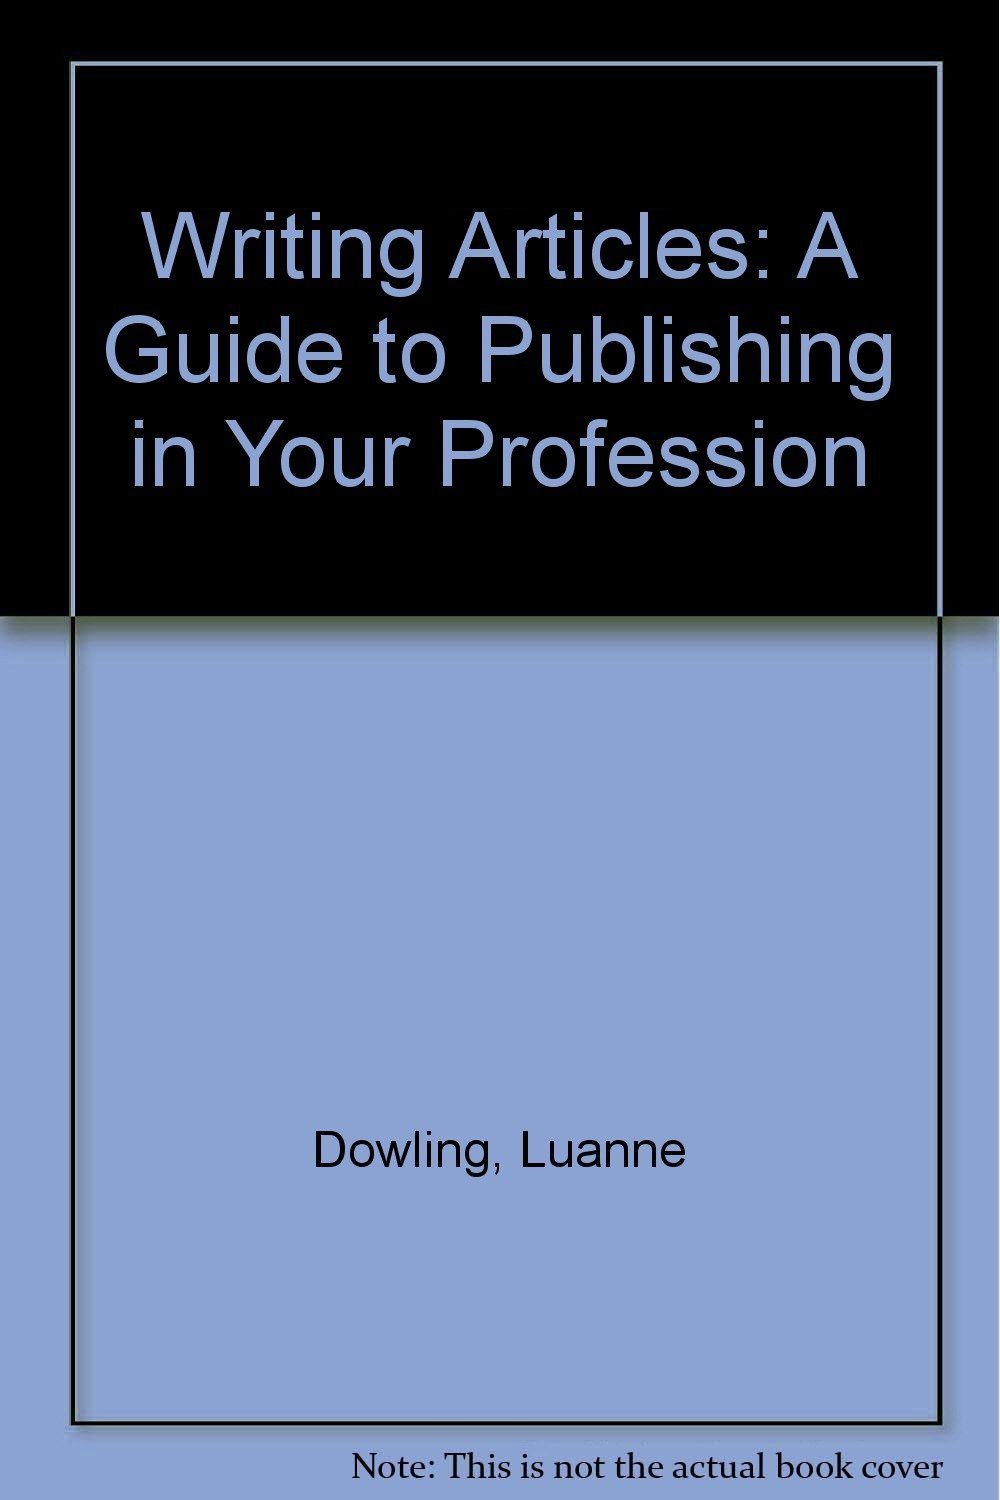 Writing Articles: A Guide to Publishing in Your Profession [Jan 01, 1994] Dow...